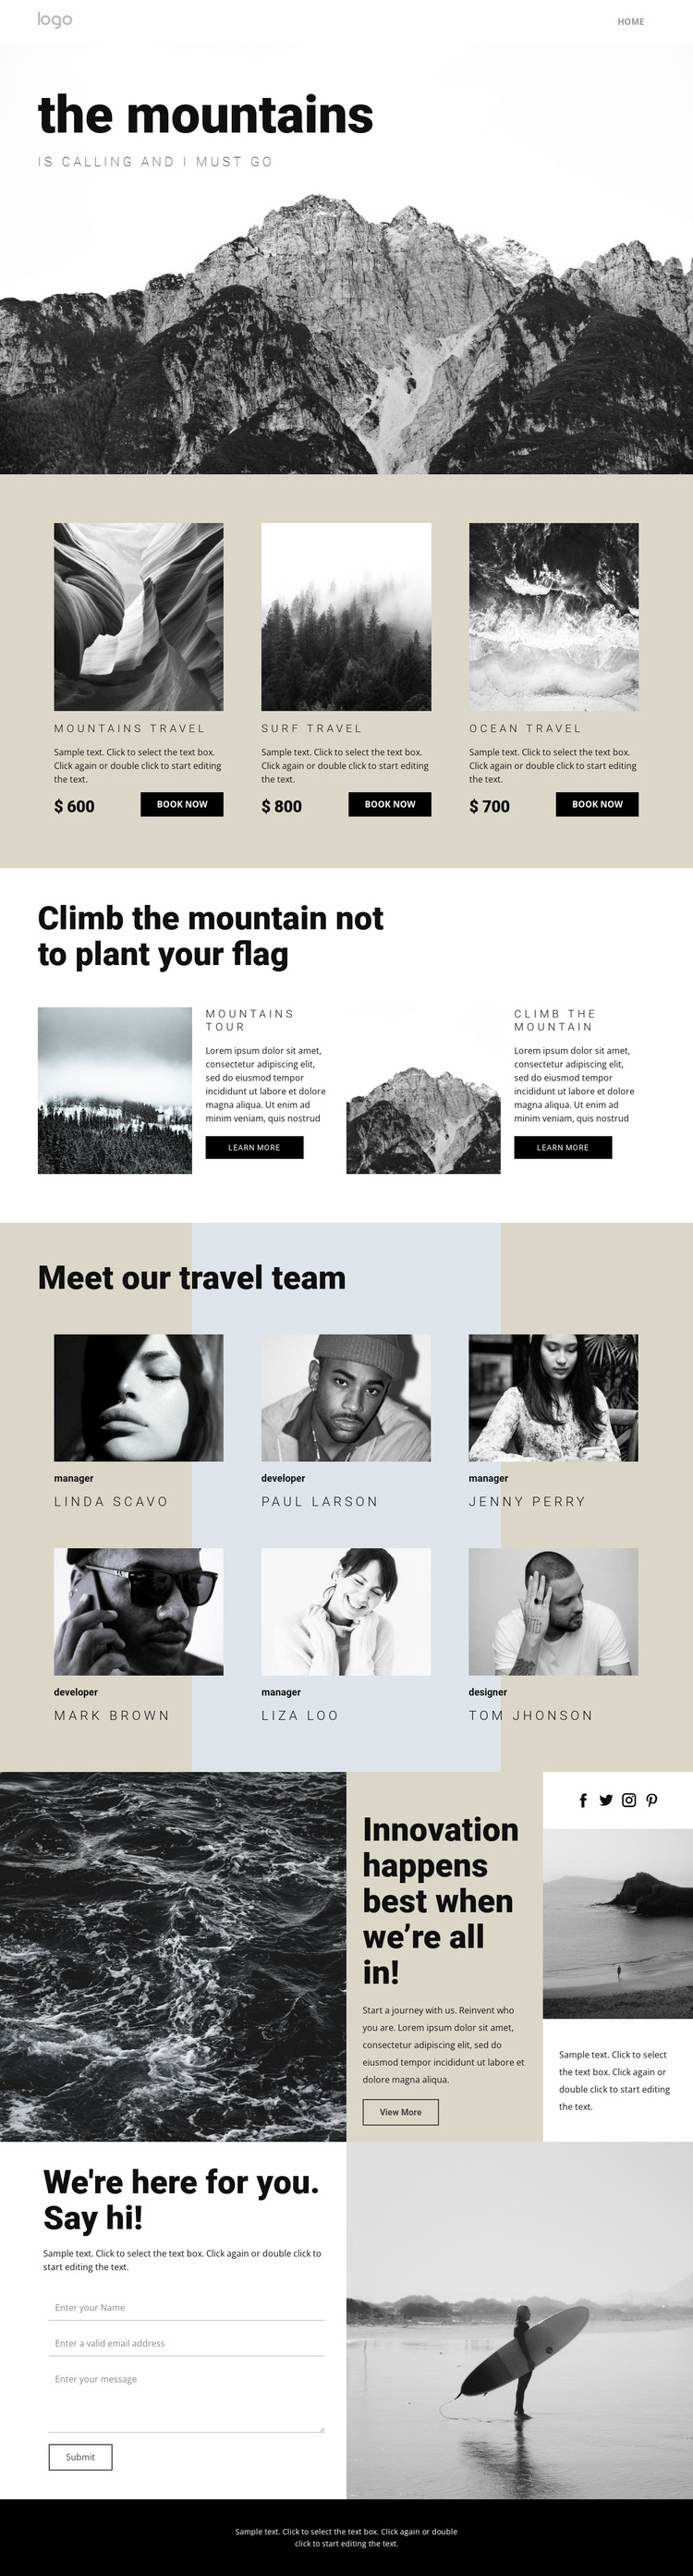 Agency for people who travel Website Design